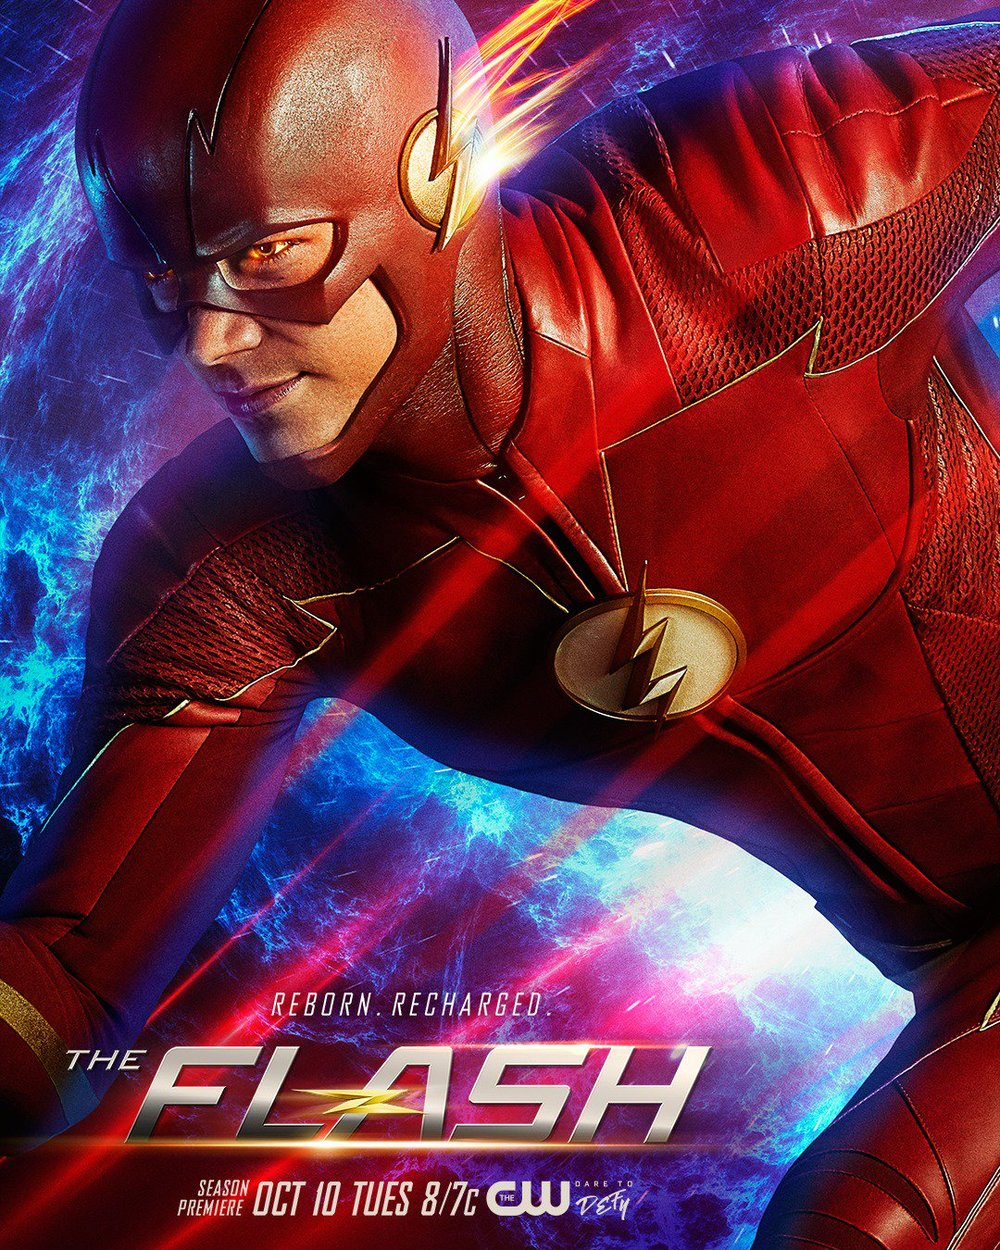 (The CW, Twitter: https://twitter.com/CW_TheFlash/media)